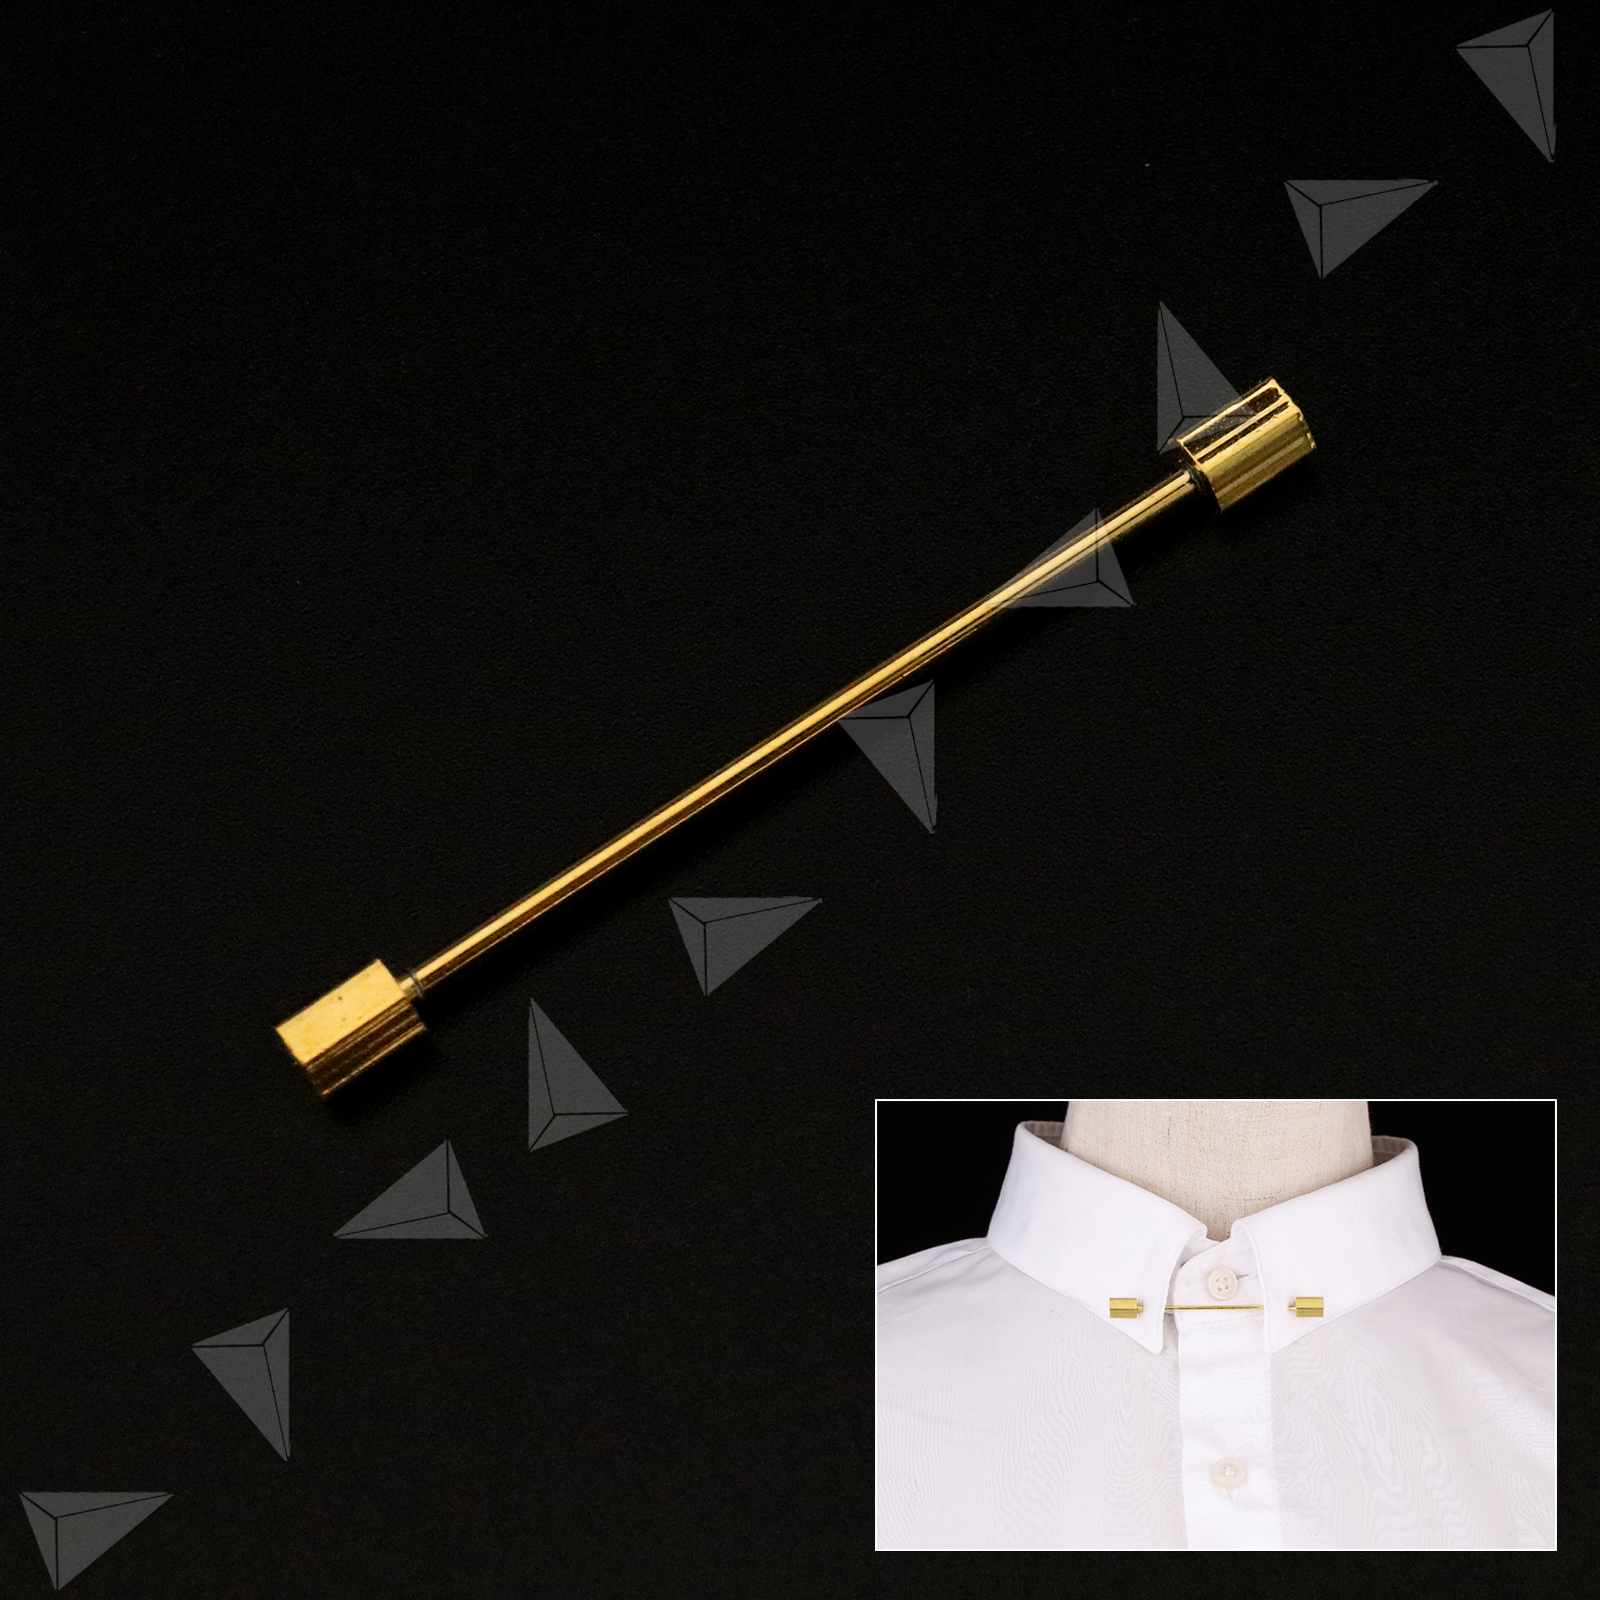 Men's Tie Pins & Clips Men Tie Brooch Shirt Neck Collar Clip Bar Pin Chain  Silver/Gold Party Gift Jewellery & Watches collabwith.org